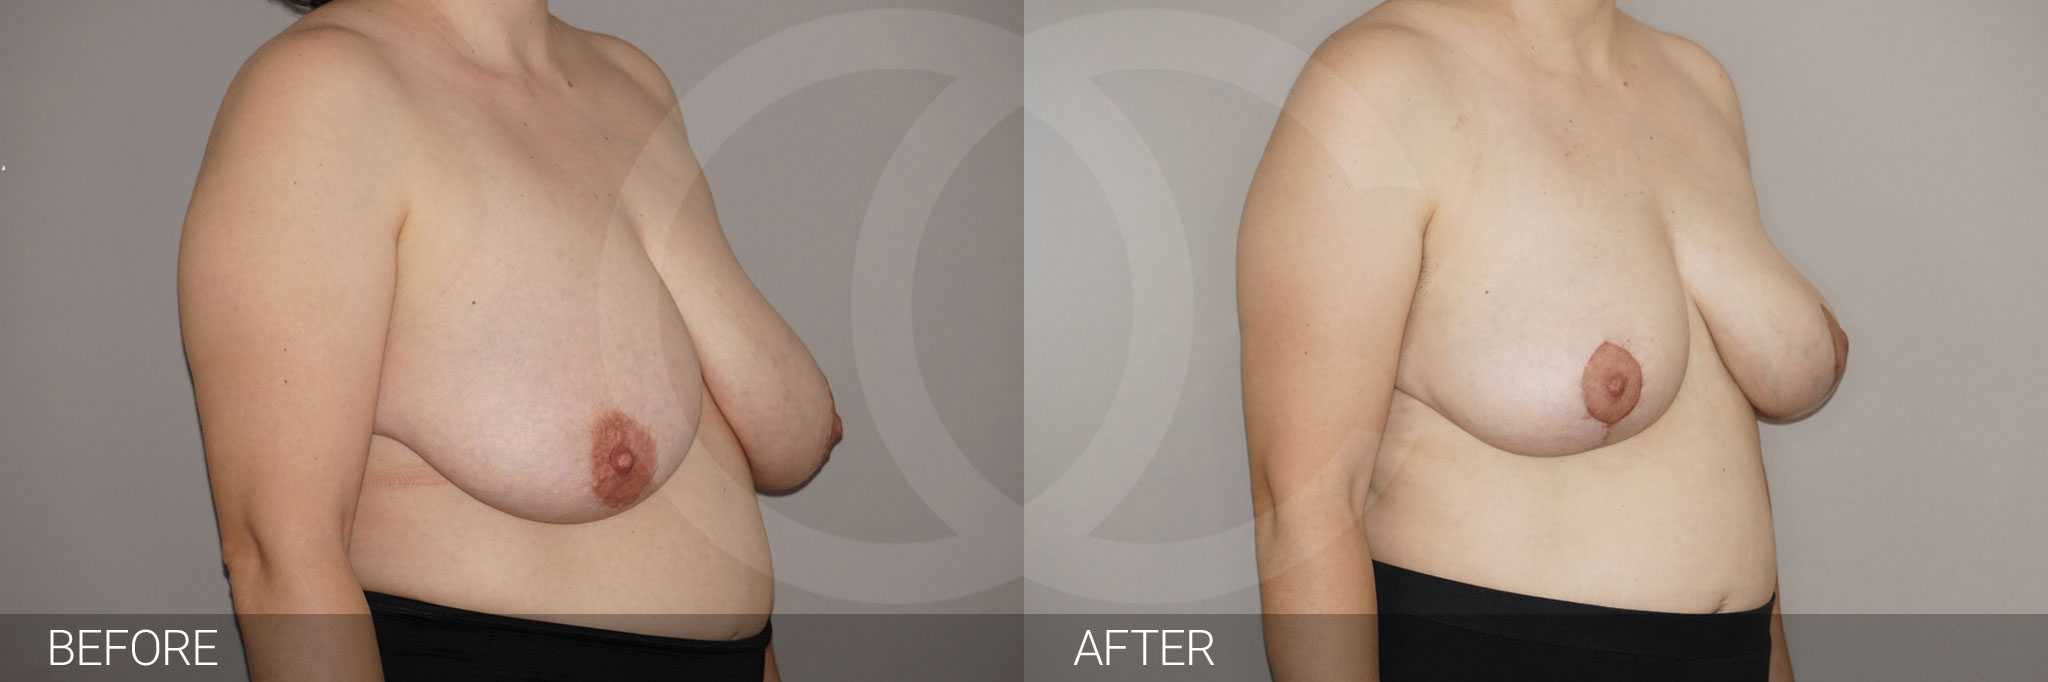 Breast Reduction with liposuction ante/post-op II